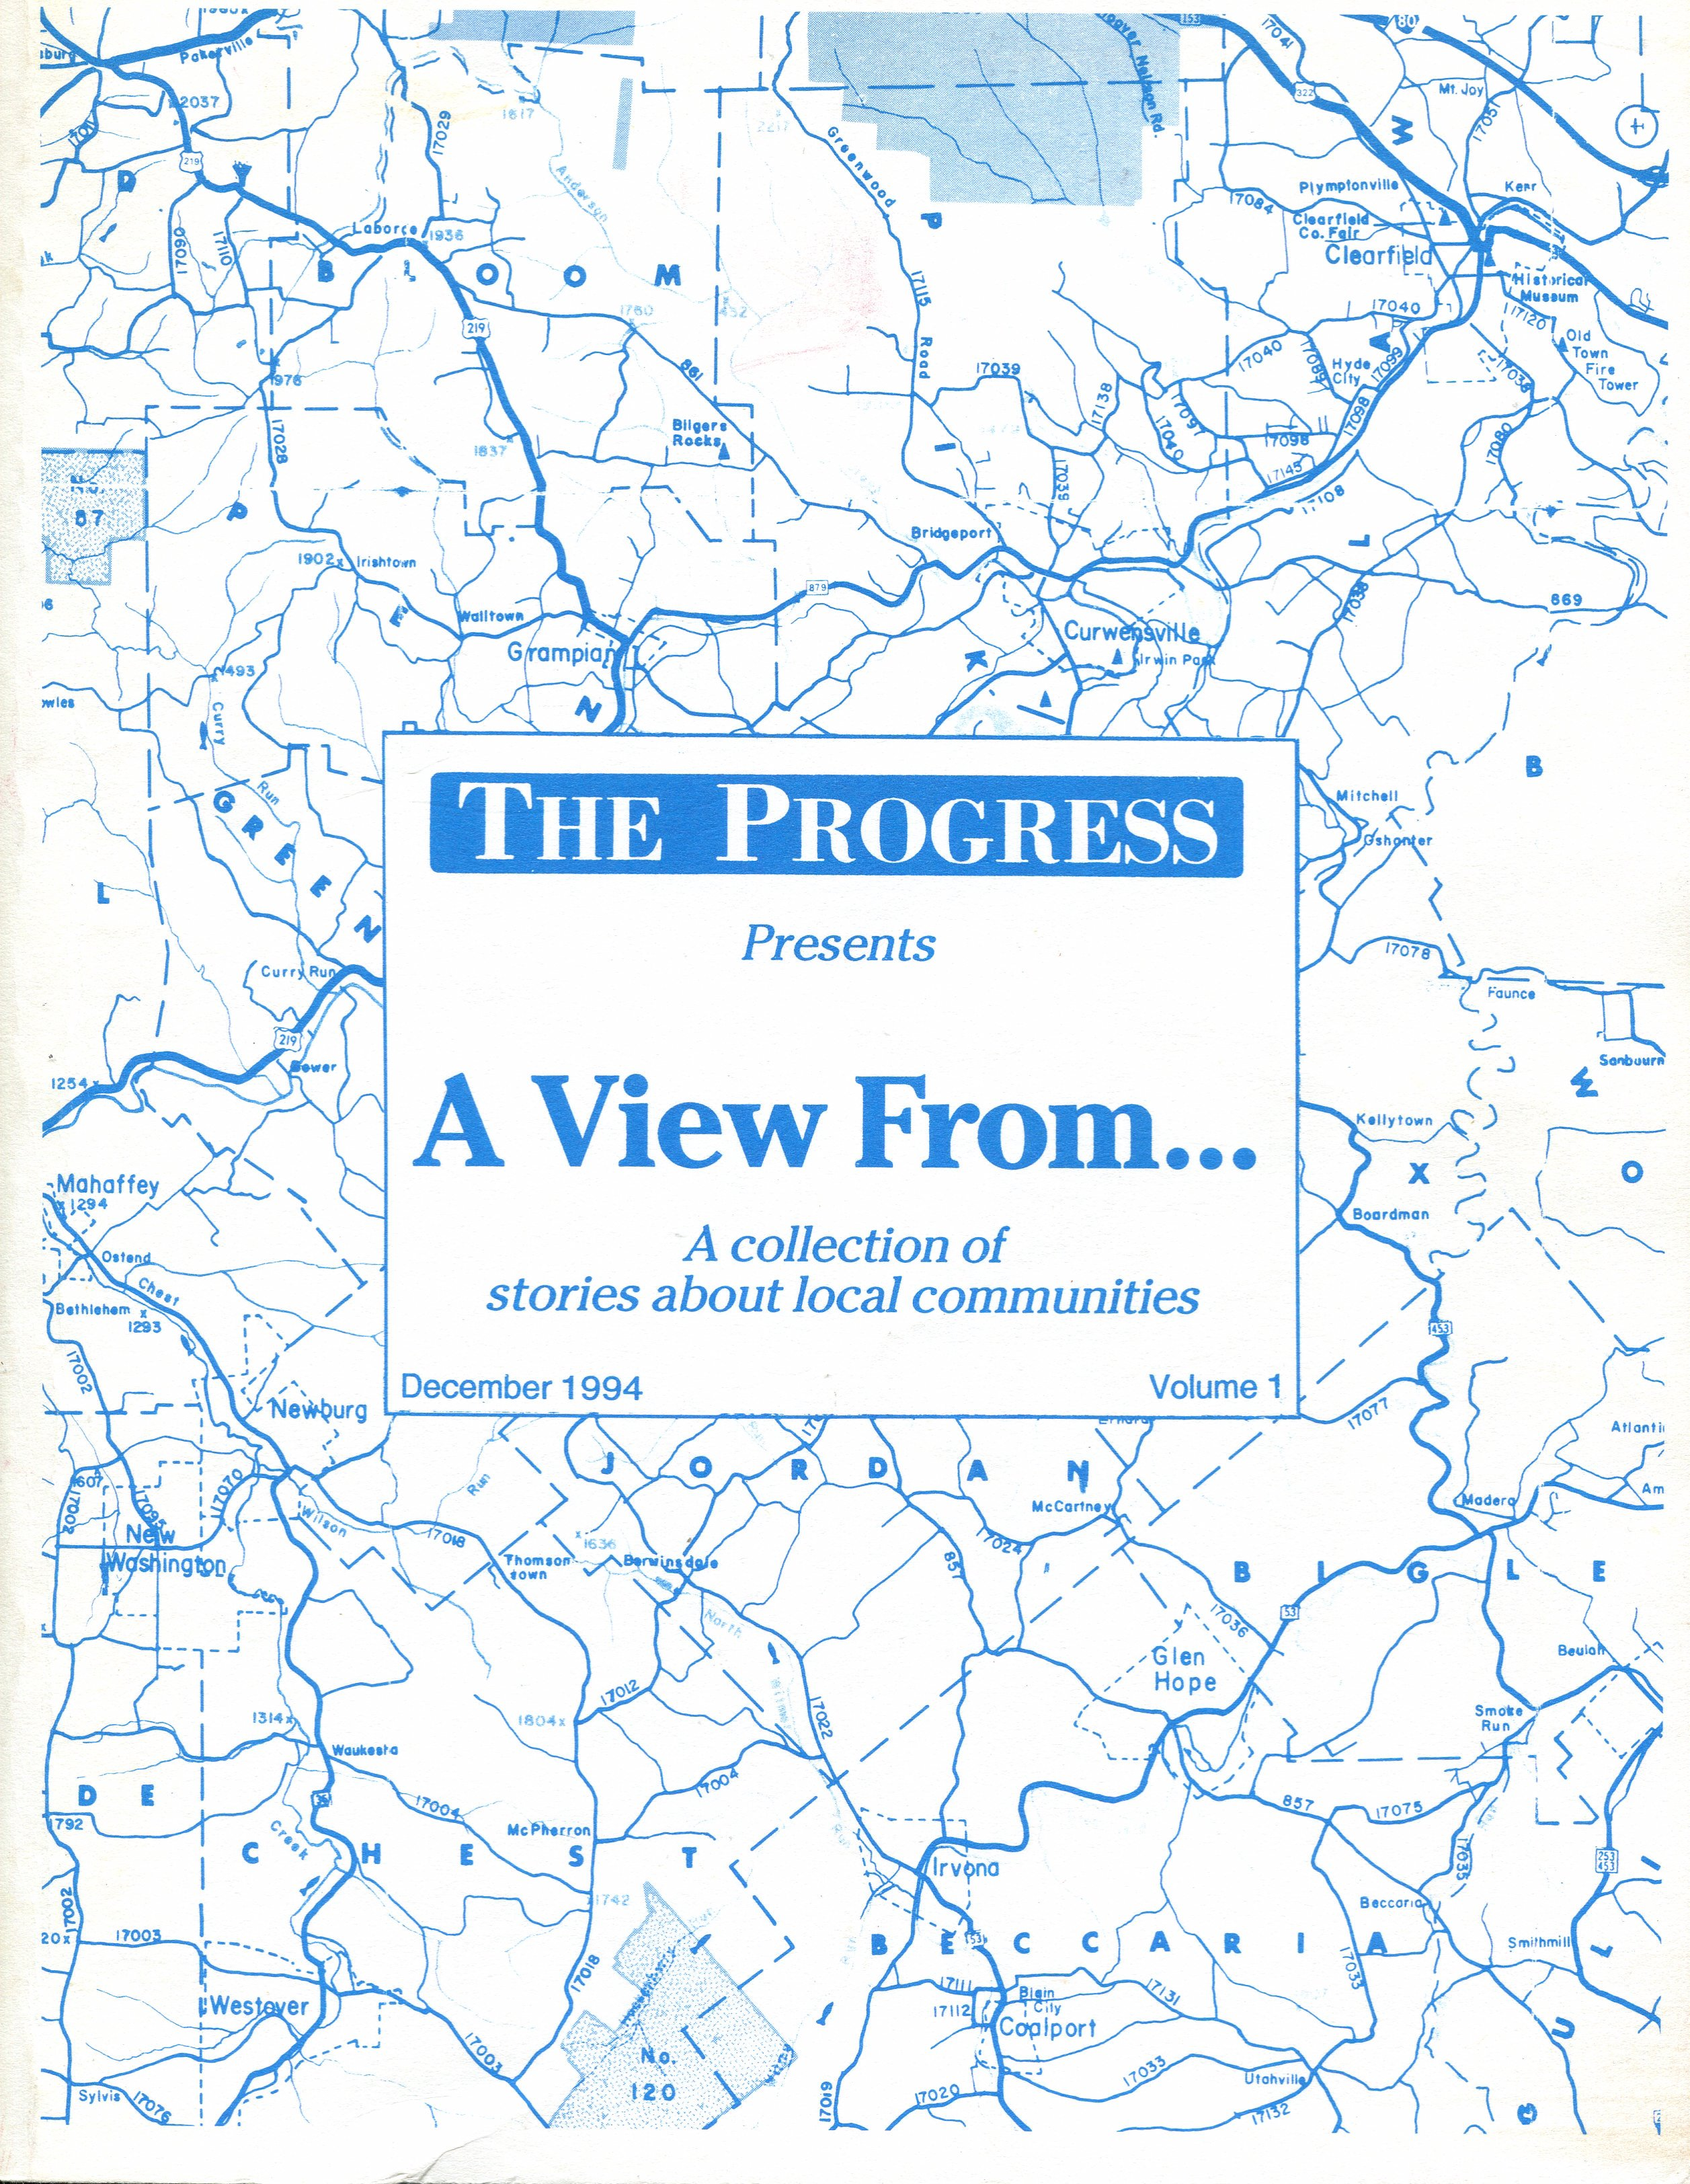 A View From the Progress, Volume #1'